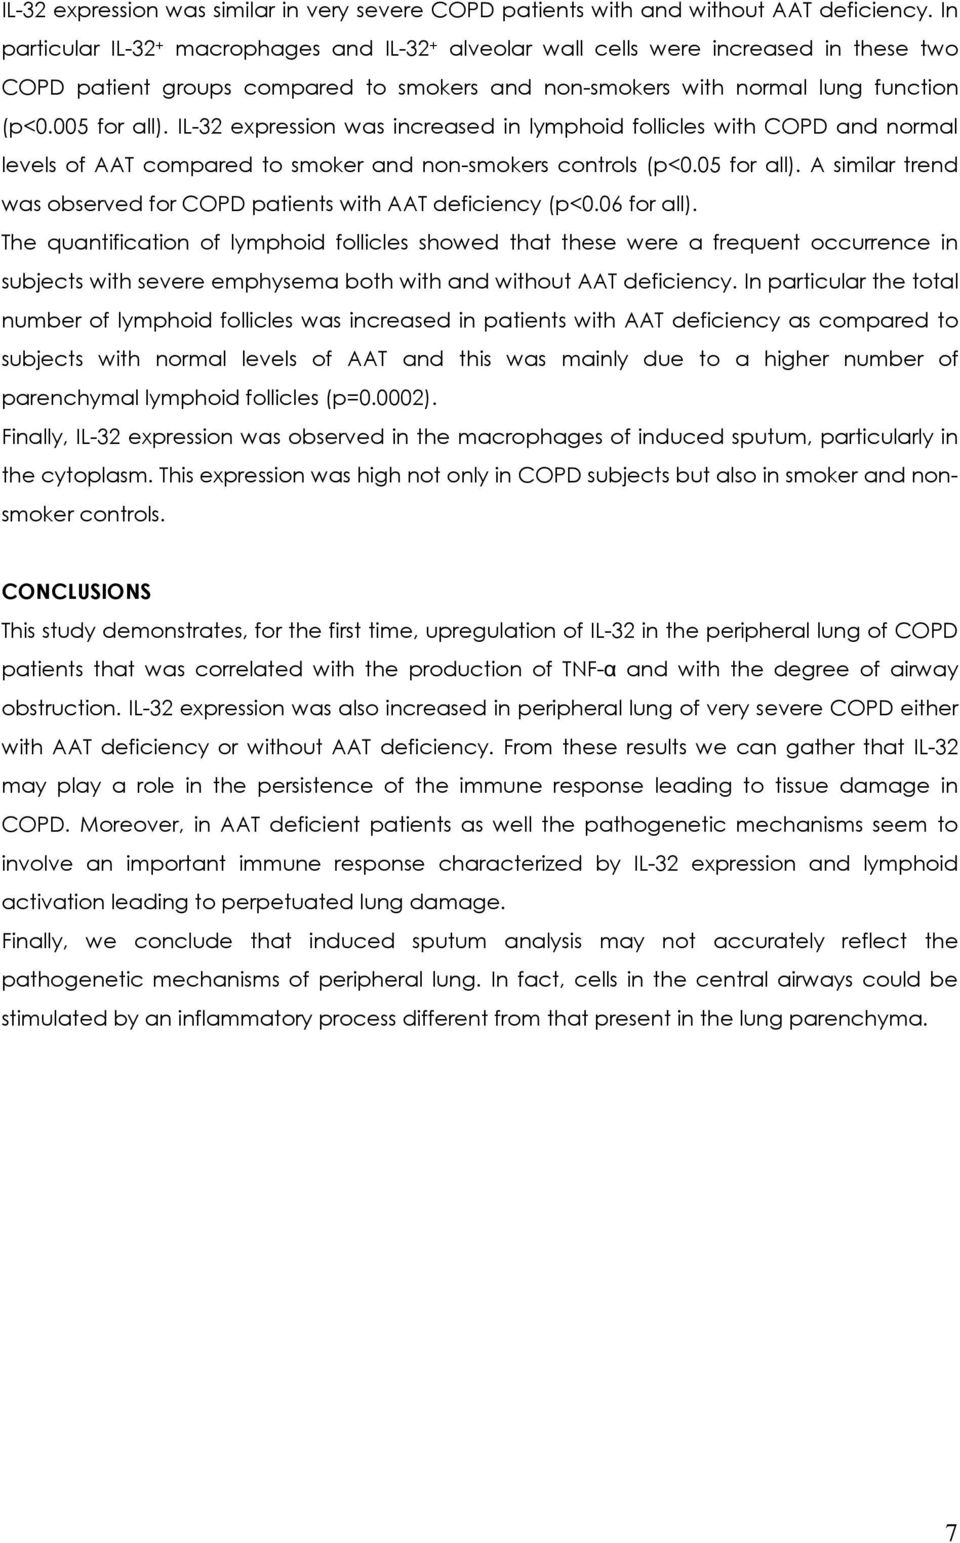 IL-32 expression was increased in lymphoid follicles with COPD and normal levels of AAT compared to smoker and non-smokers controls (p<0.05 for all).